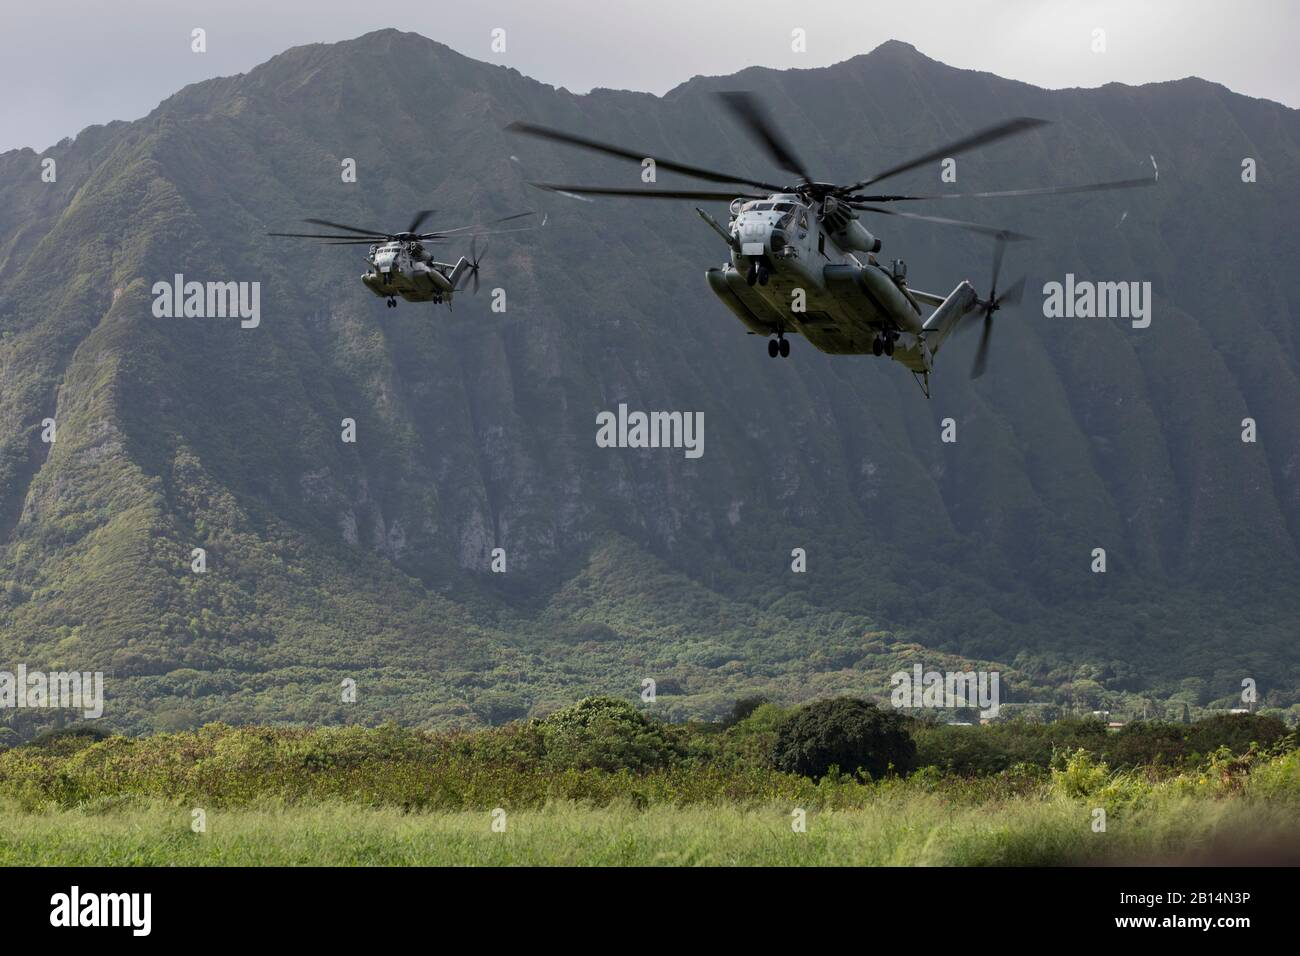 U.S. Marine Corps CH-53E Super Stallions assigned to Marine Heavy Helicopter Squadron (HMH) 463 prepare to land and drop off U.S. Marines with India Company, 3rd Battalion, 3rd Marine Regiment, during a helicopter insertion exercise at Marine Corps Training Area Bellows (MCTAB), Hawaii, Sept. 18, 2018. The company inserted into MCTAB with CH-53E Super Stallions to establish a secure landing zone, patrol over roads and through jungle terrain, and to clear simulated villages of hostiles. (U.S. Marine Corps photo by Sgt. Jesus Sepulveda Torres) Stock Photo